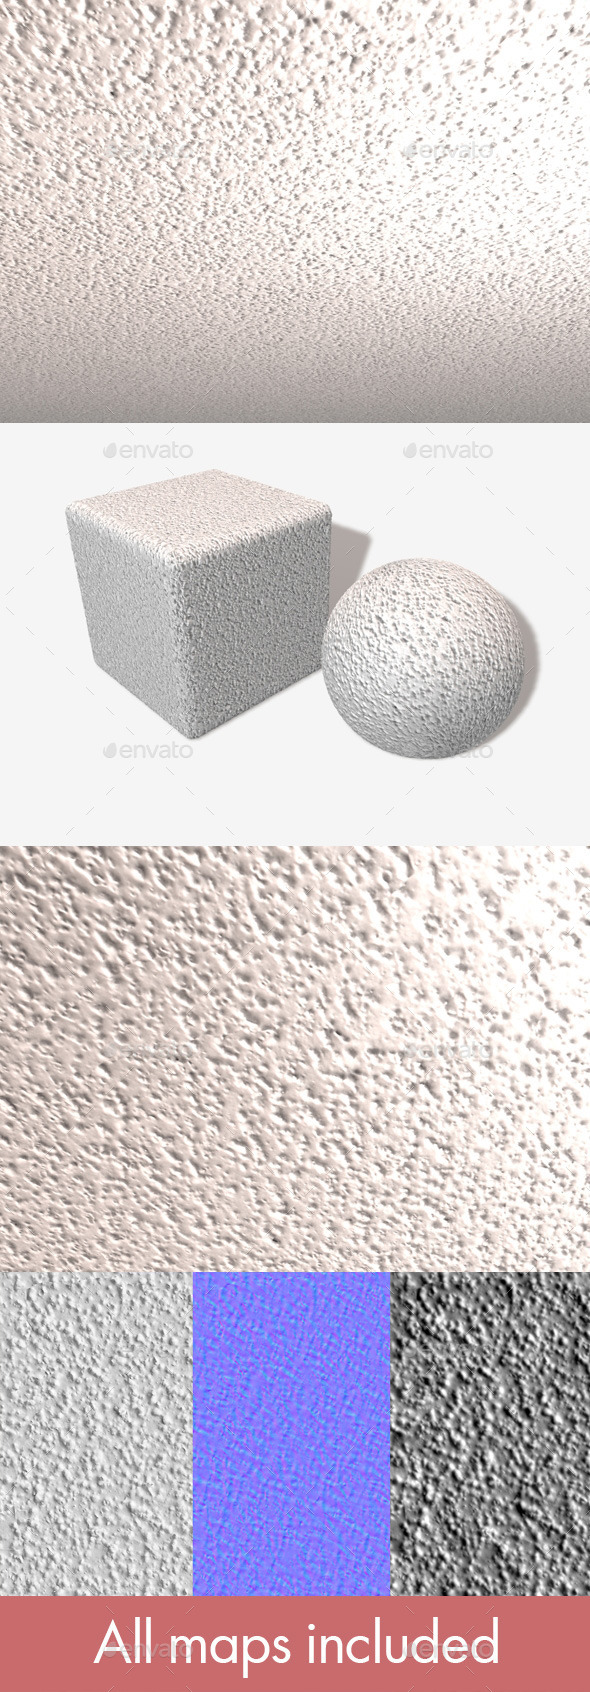 Textured Ceiling Plaster Seamless Texture - 3DOcean Item for Sale